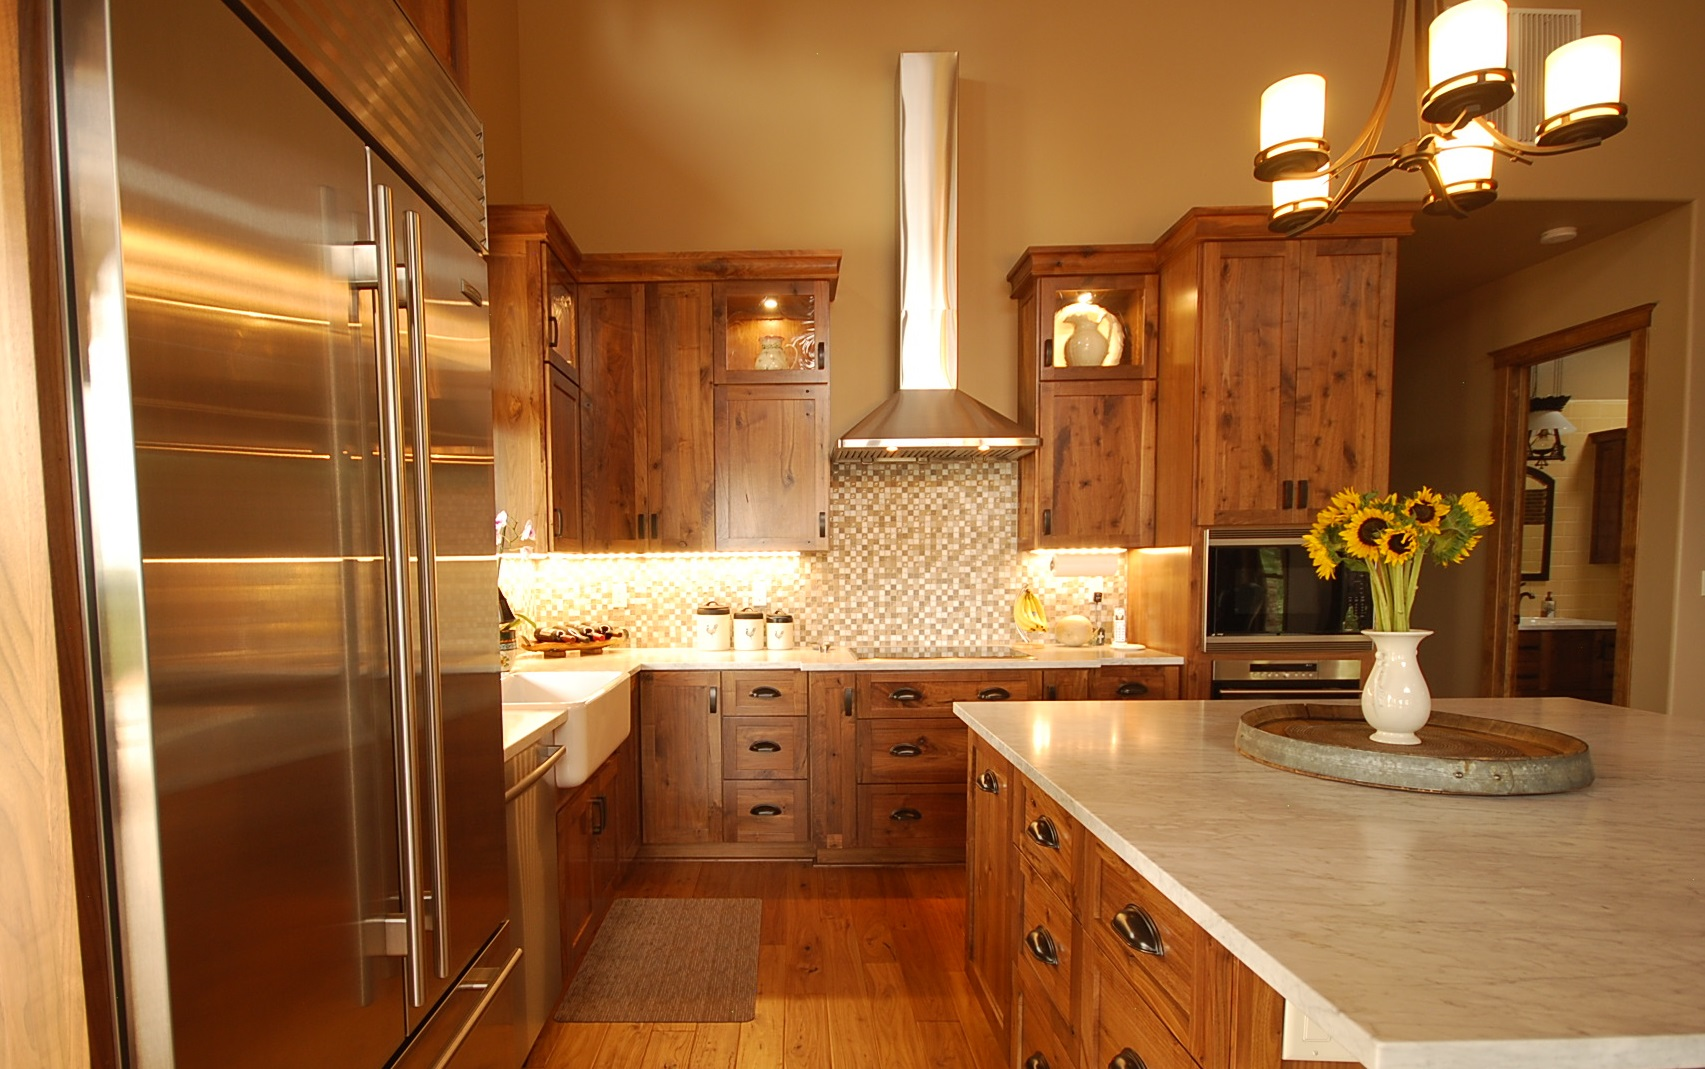 kitchen cabinets review local custom or semi custom manufactured kitchen cabinet reviews Local Custom built rustic walnut cabinets and Calacatta marble counters with oil rubbed bronze drawer pulls